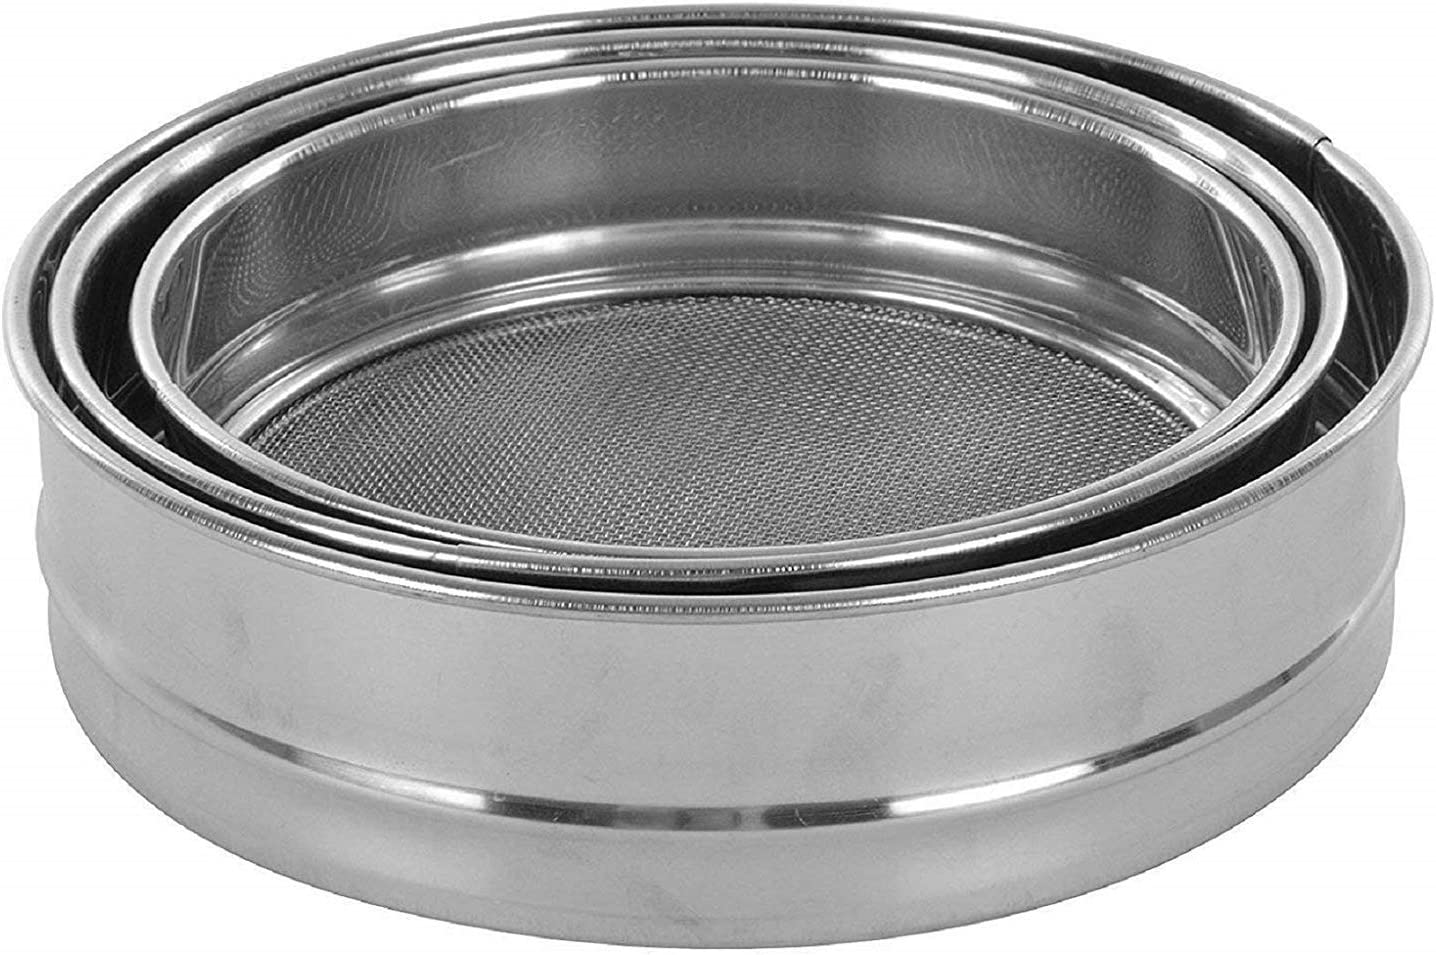 Red Crush Stainless Steel Flour Att 格安 価格でご提供いたします 割り引き Strainers Chalni Spices Food